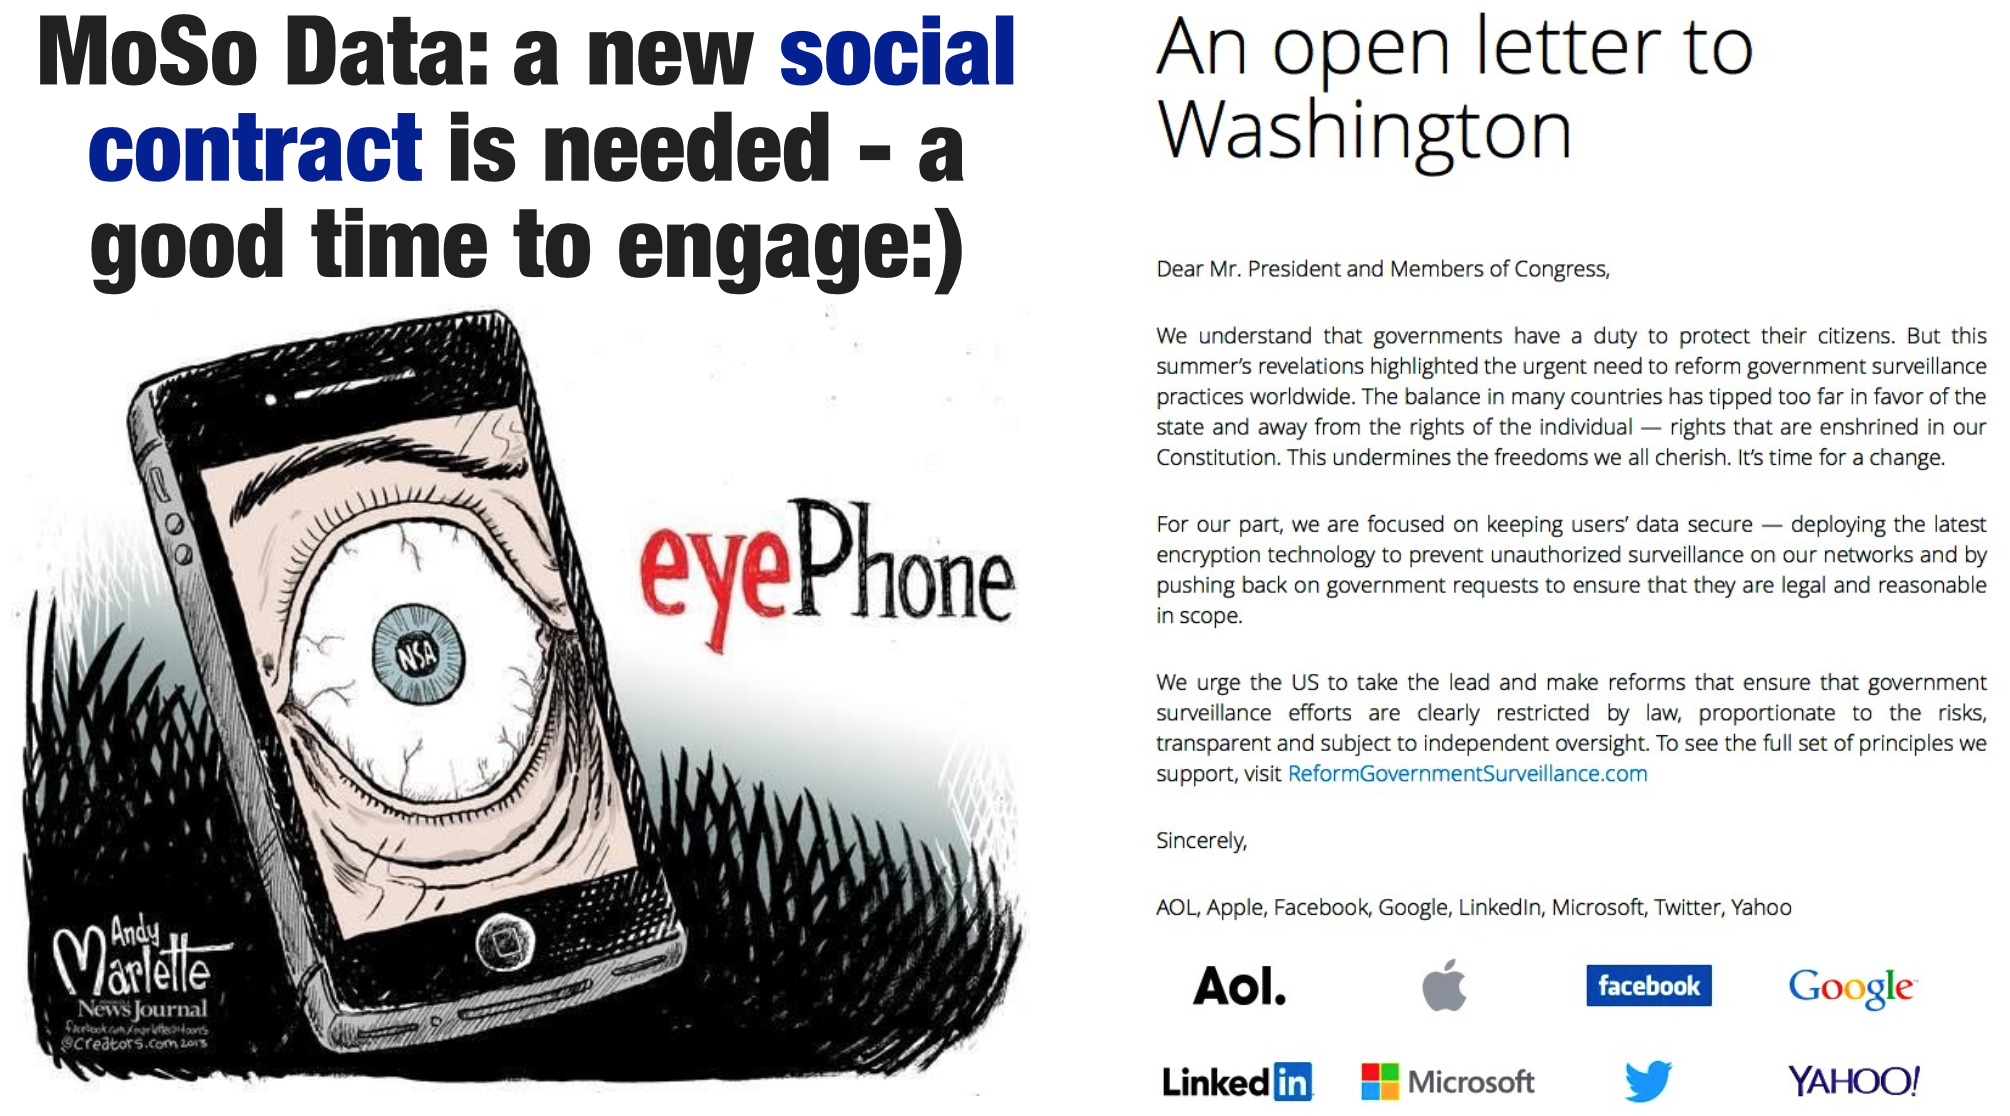 cartoon eyephone spcial contract open letter nsa futuristgerd